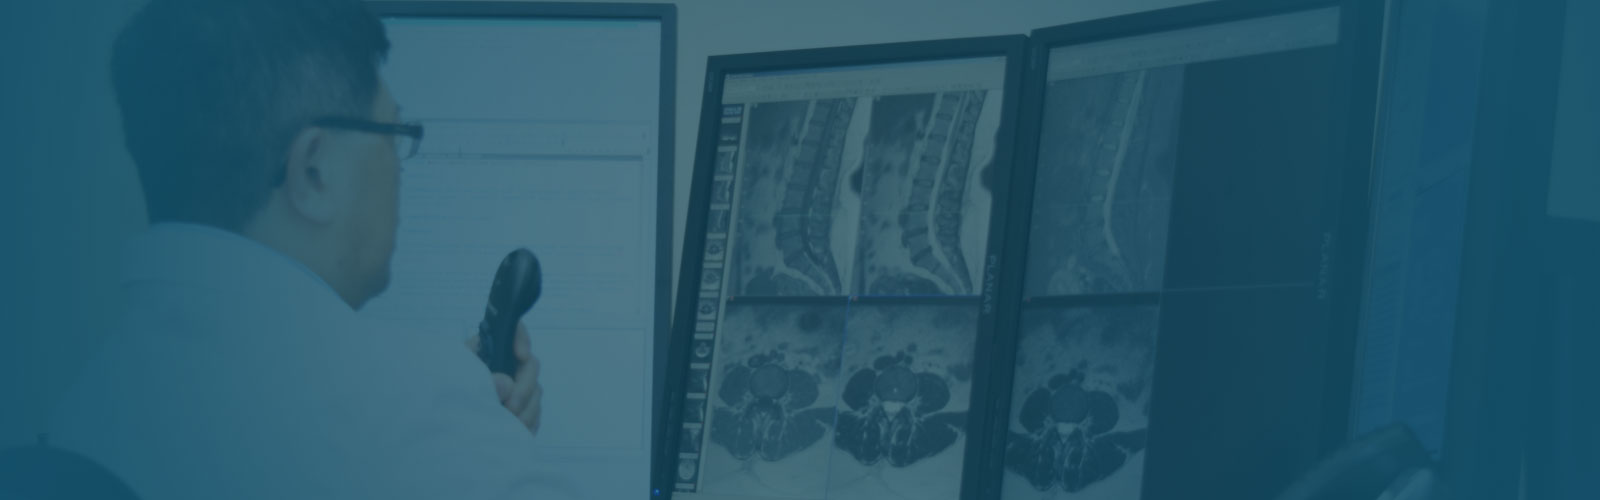 Musculoskeletal Imaging Research